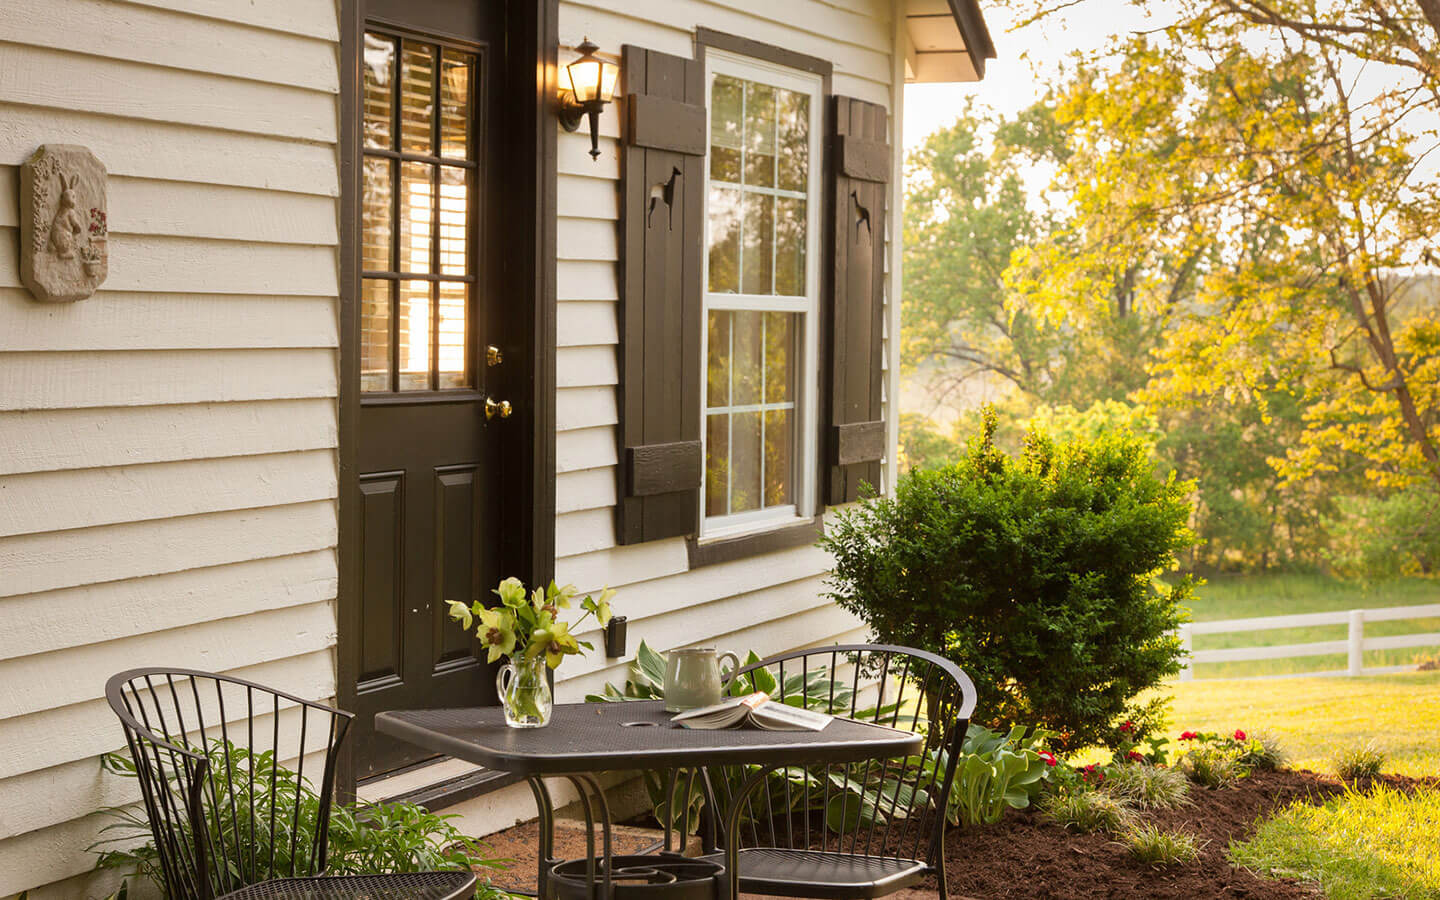 Pets have easy access to the outdoors with our 6 pet friendly cottages